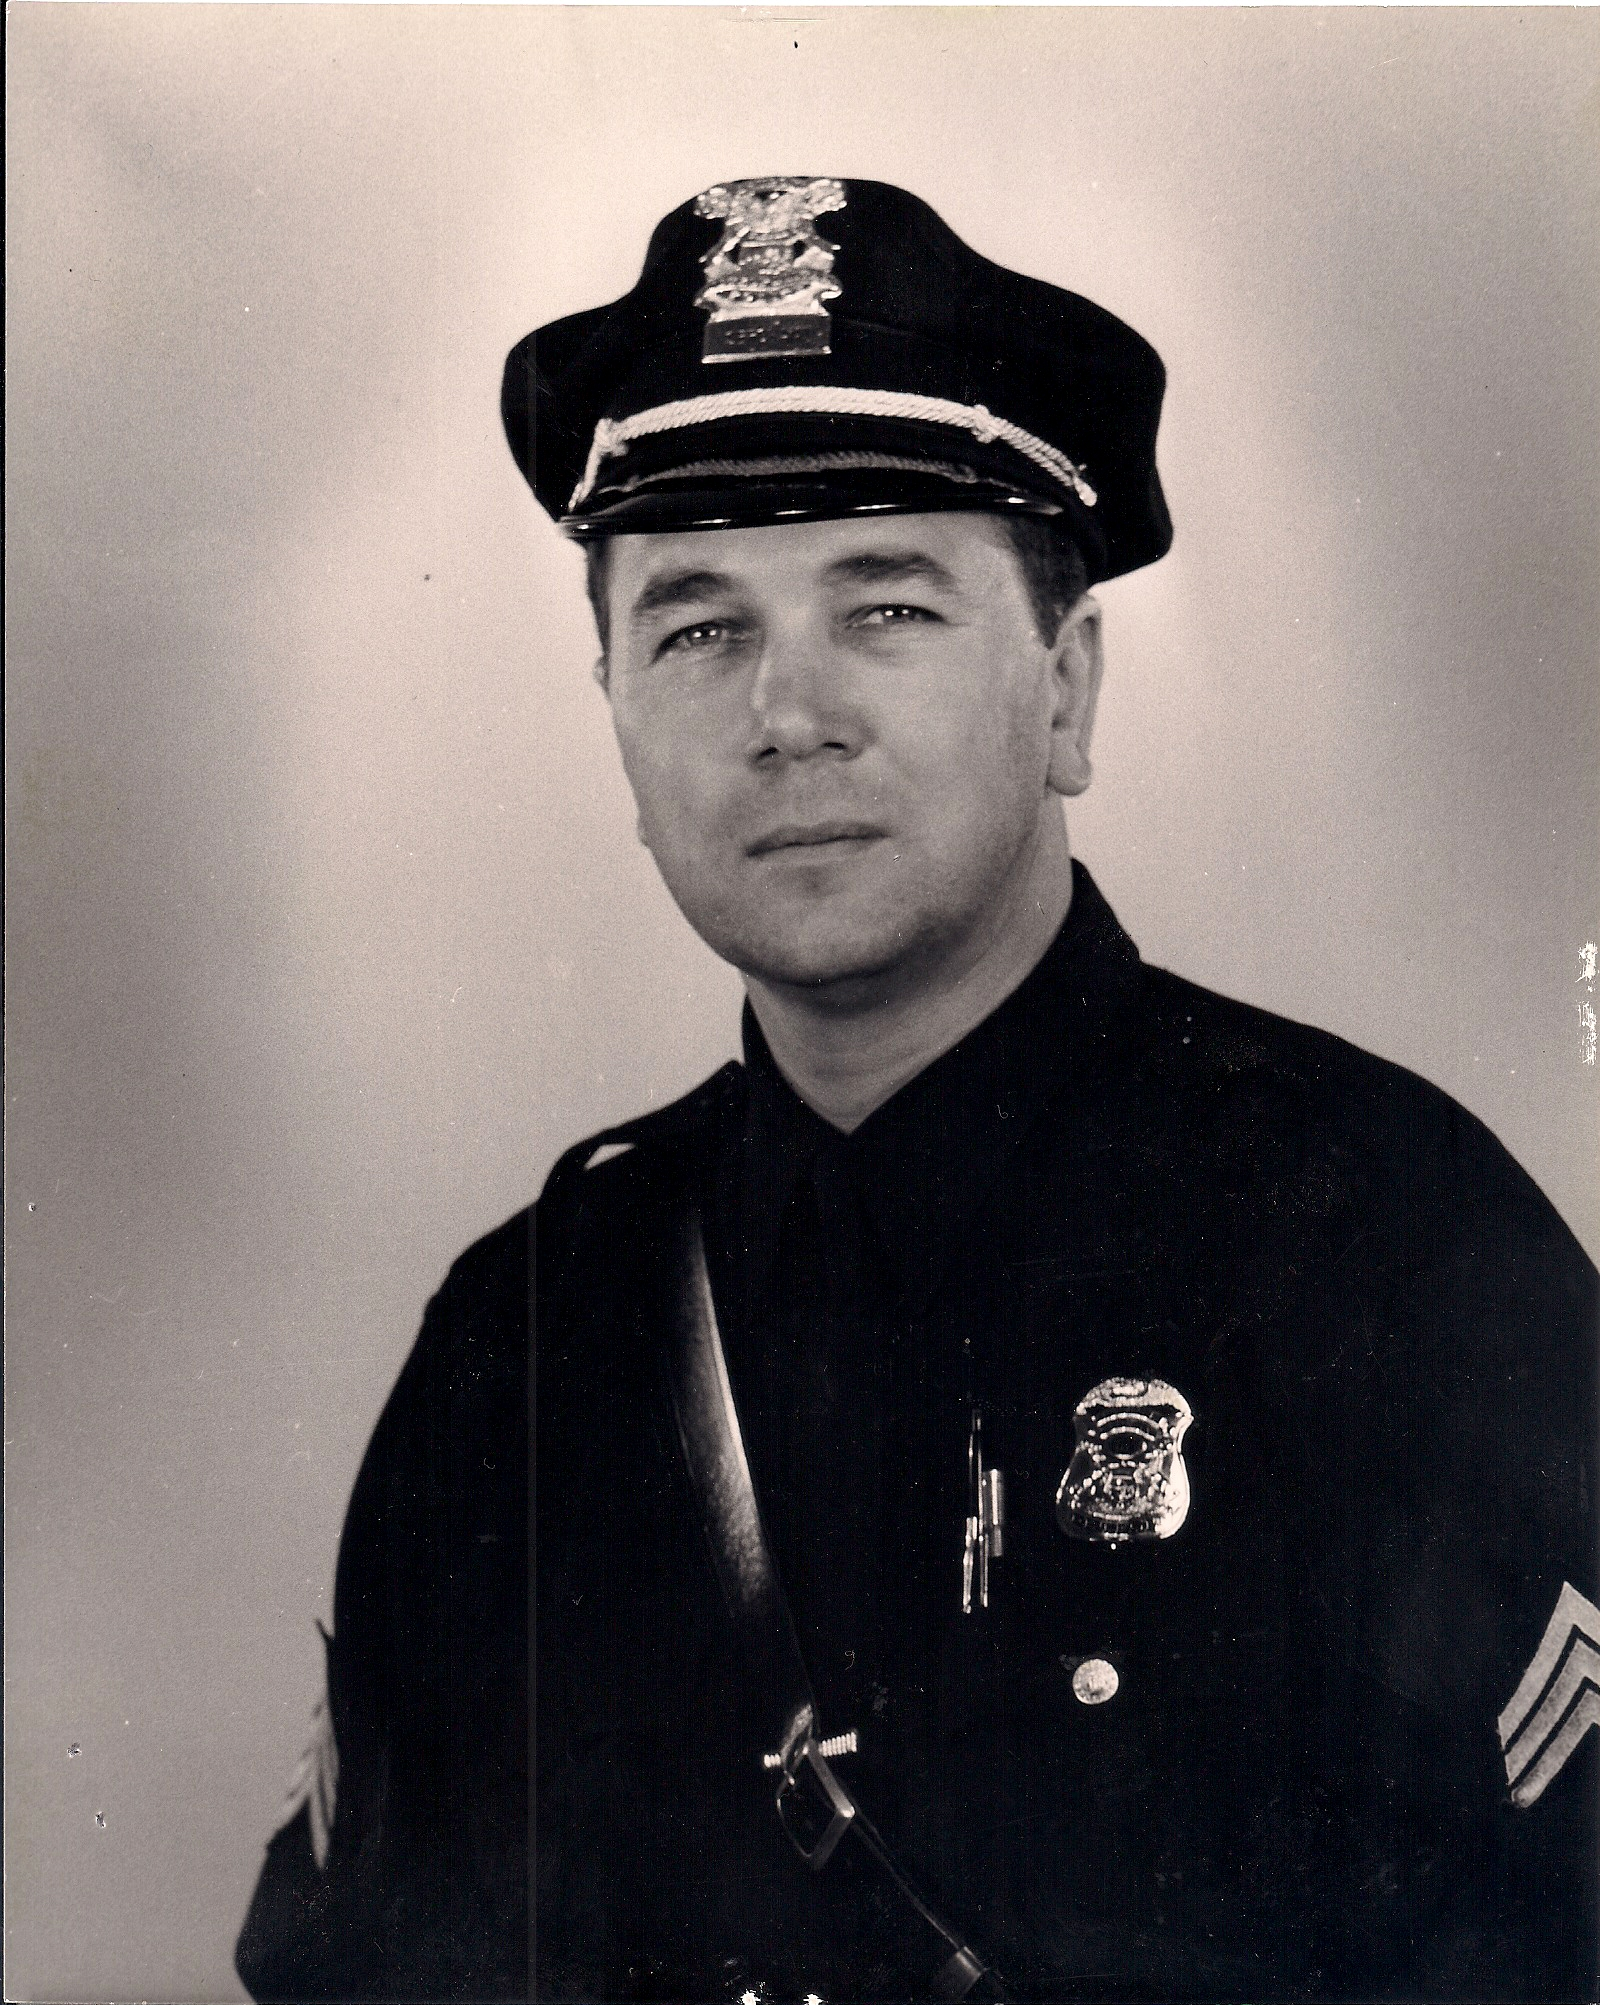 Sergeant Stanley Sech | Detroit Police Department, Michigan